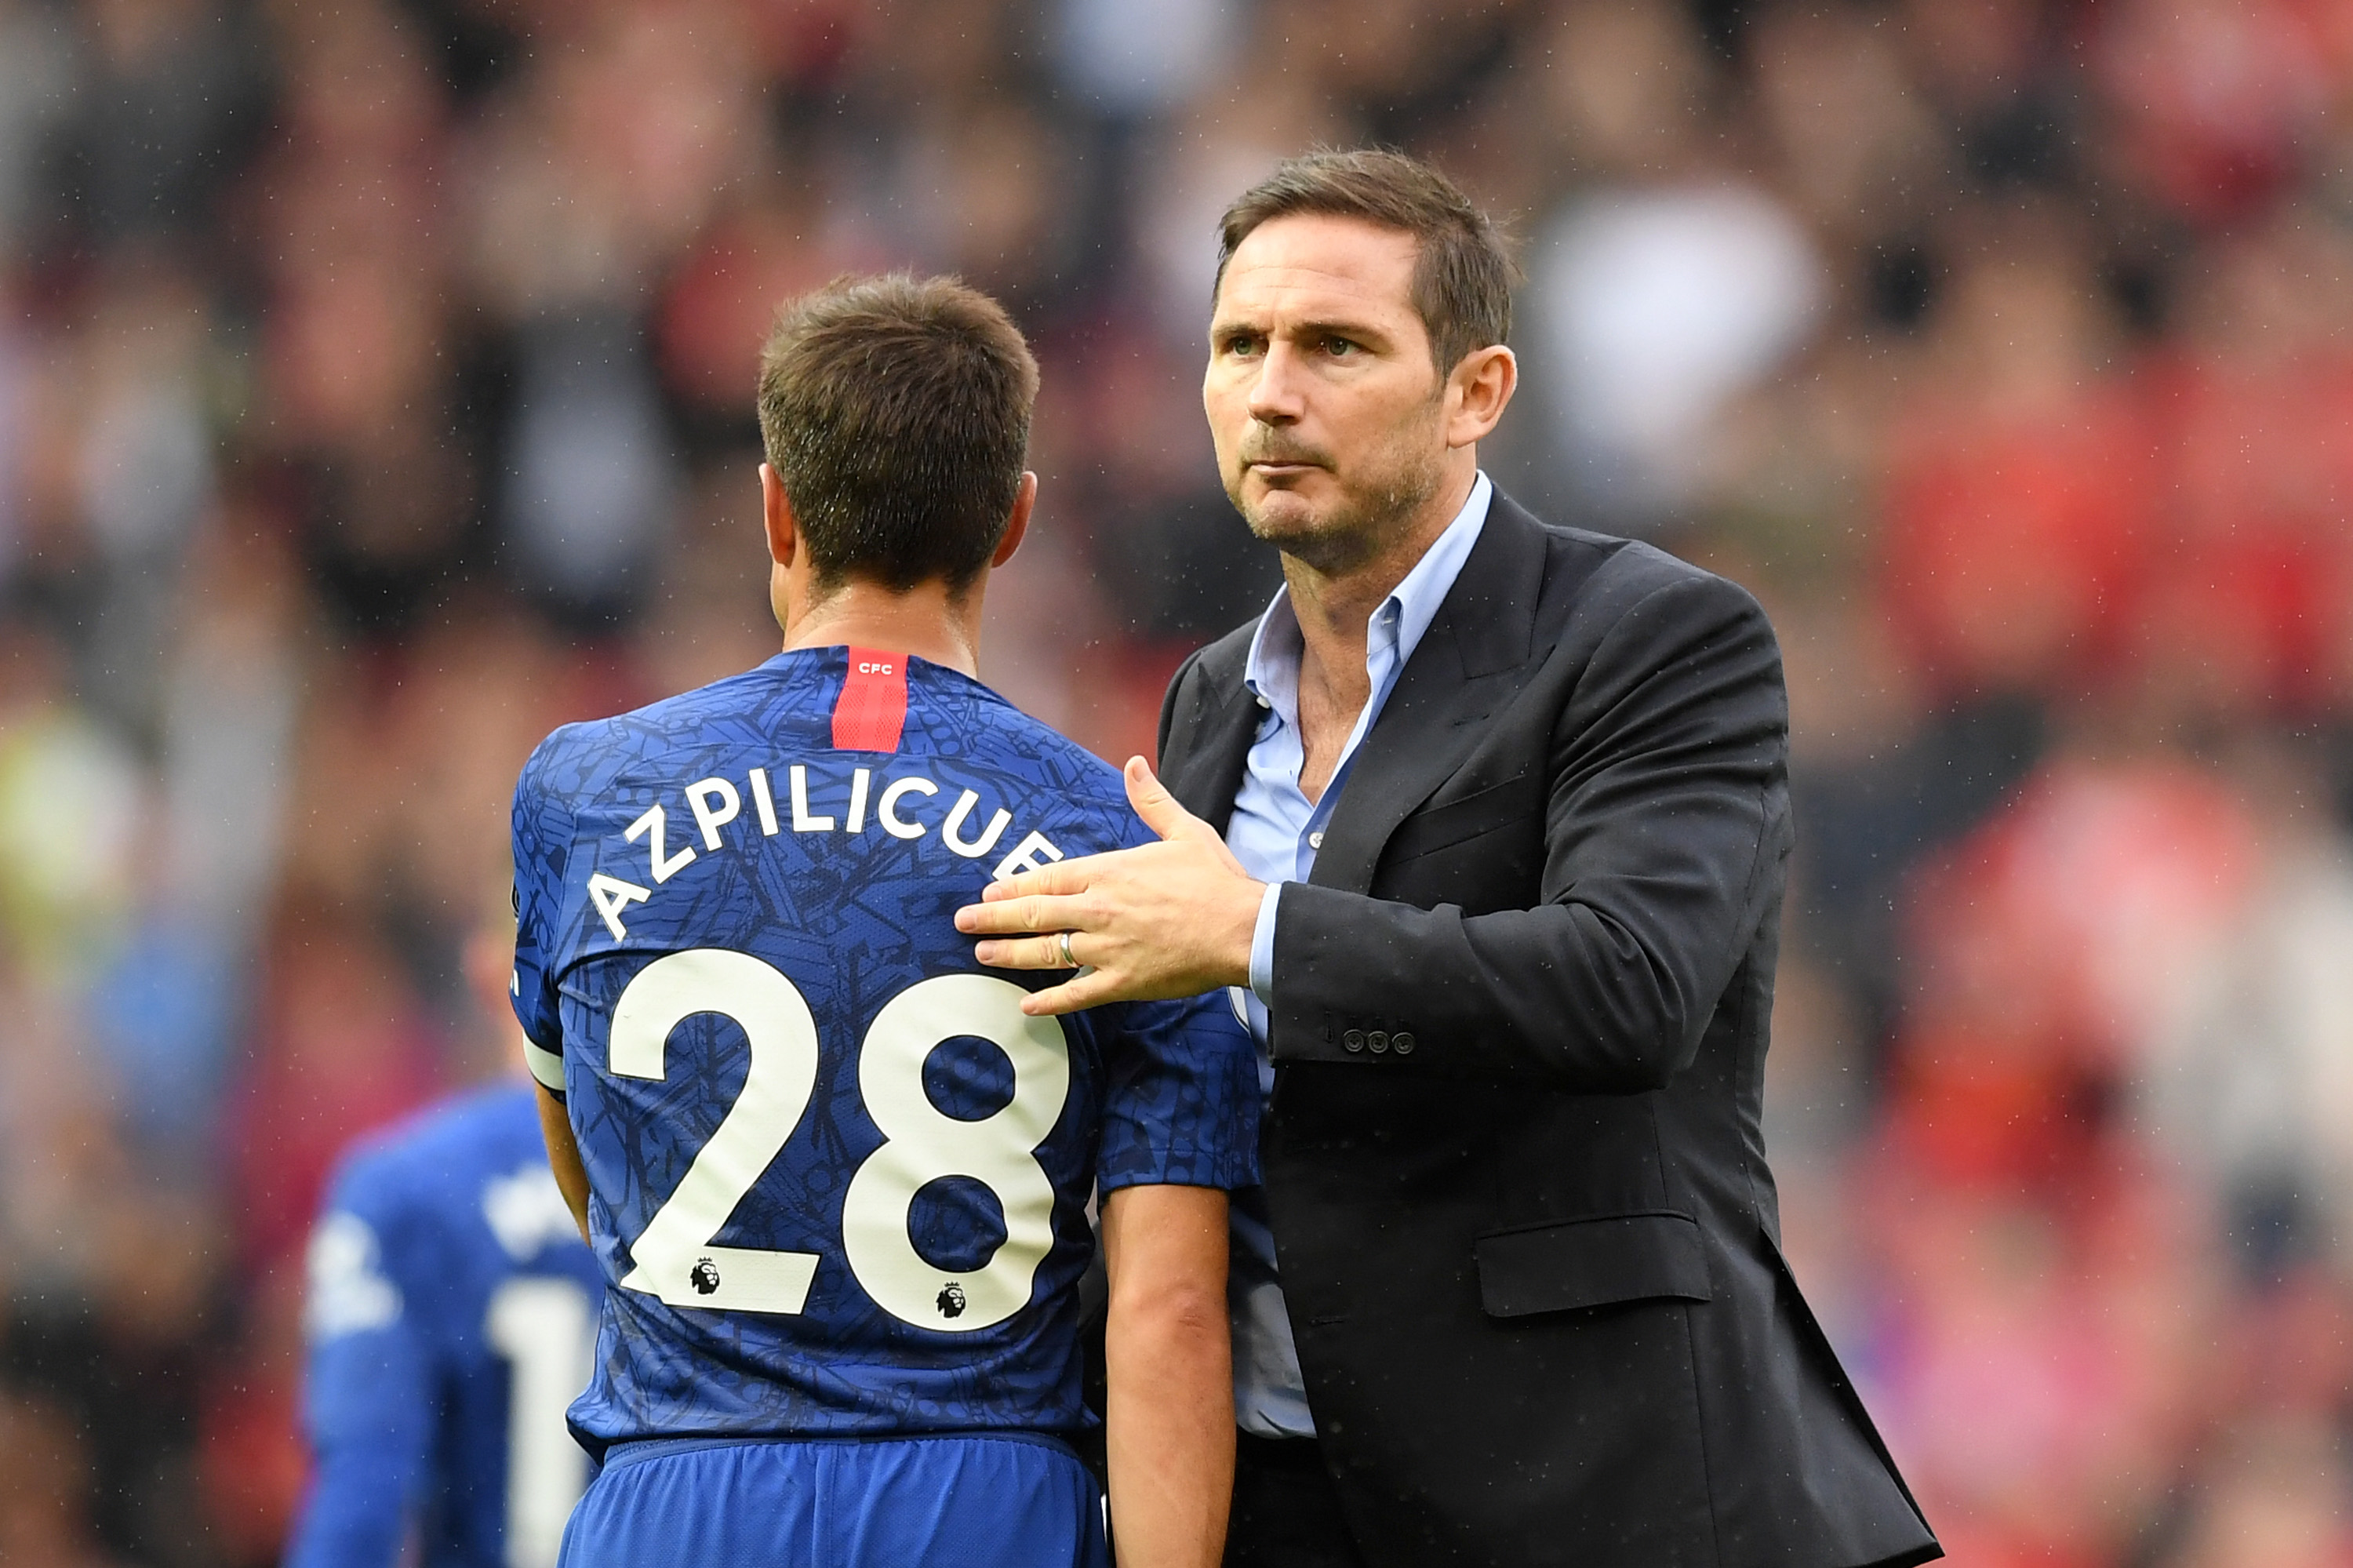 Azpilicueta had a poor outing before suffering a hamstring injury (Photo by Michael Regan/Getty Images)